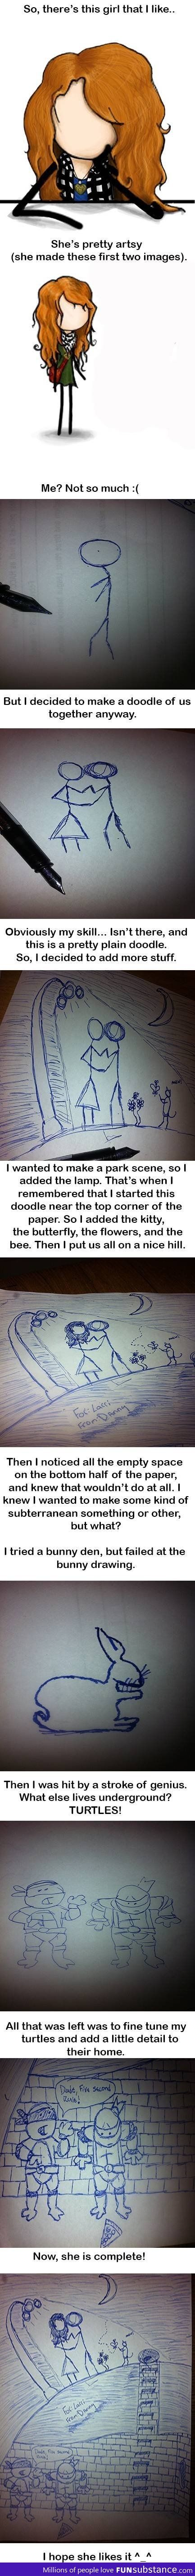 Best drawing ever! XD